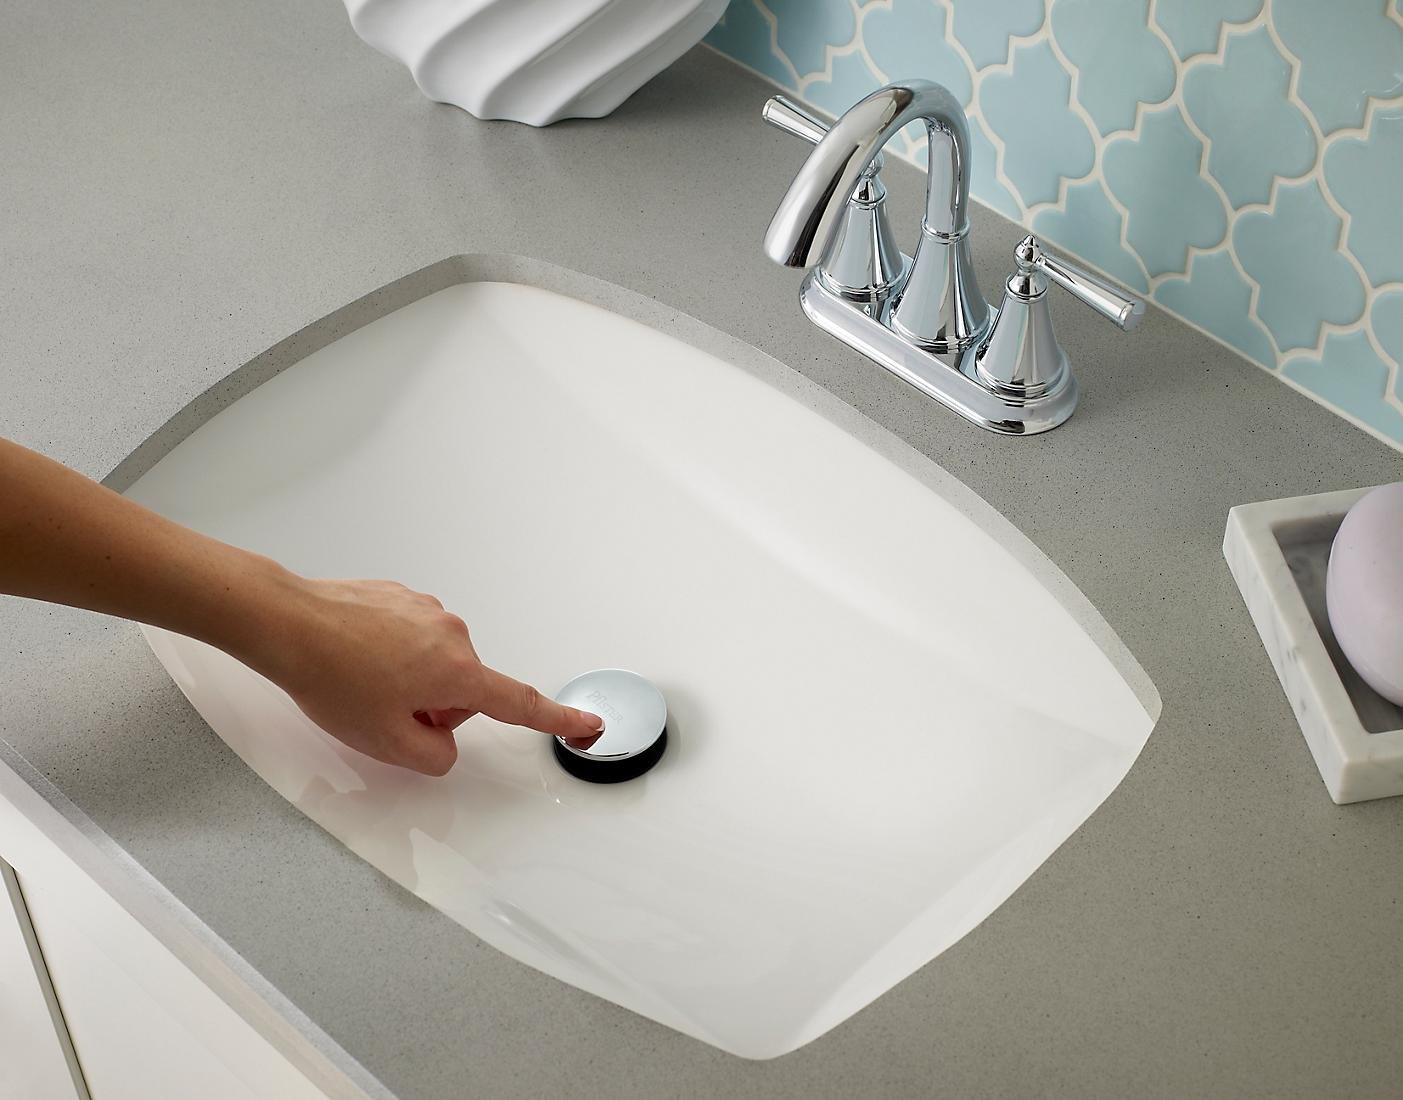 Push and Seal, Tool-Less Drain Assembly | Pfister Faucets